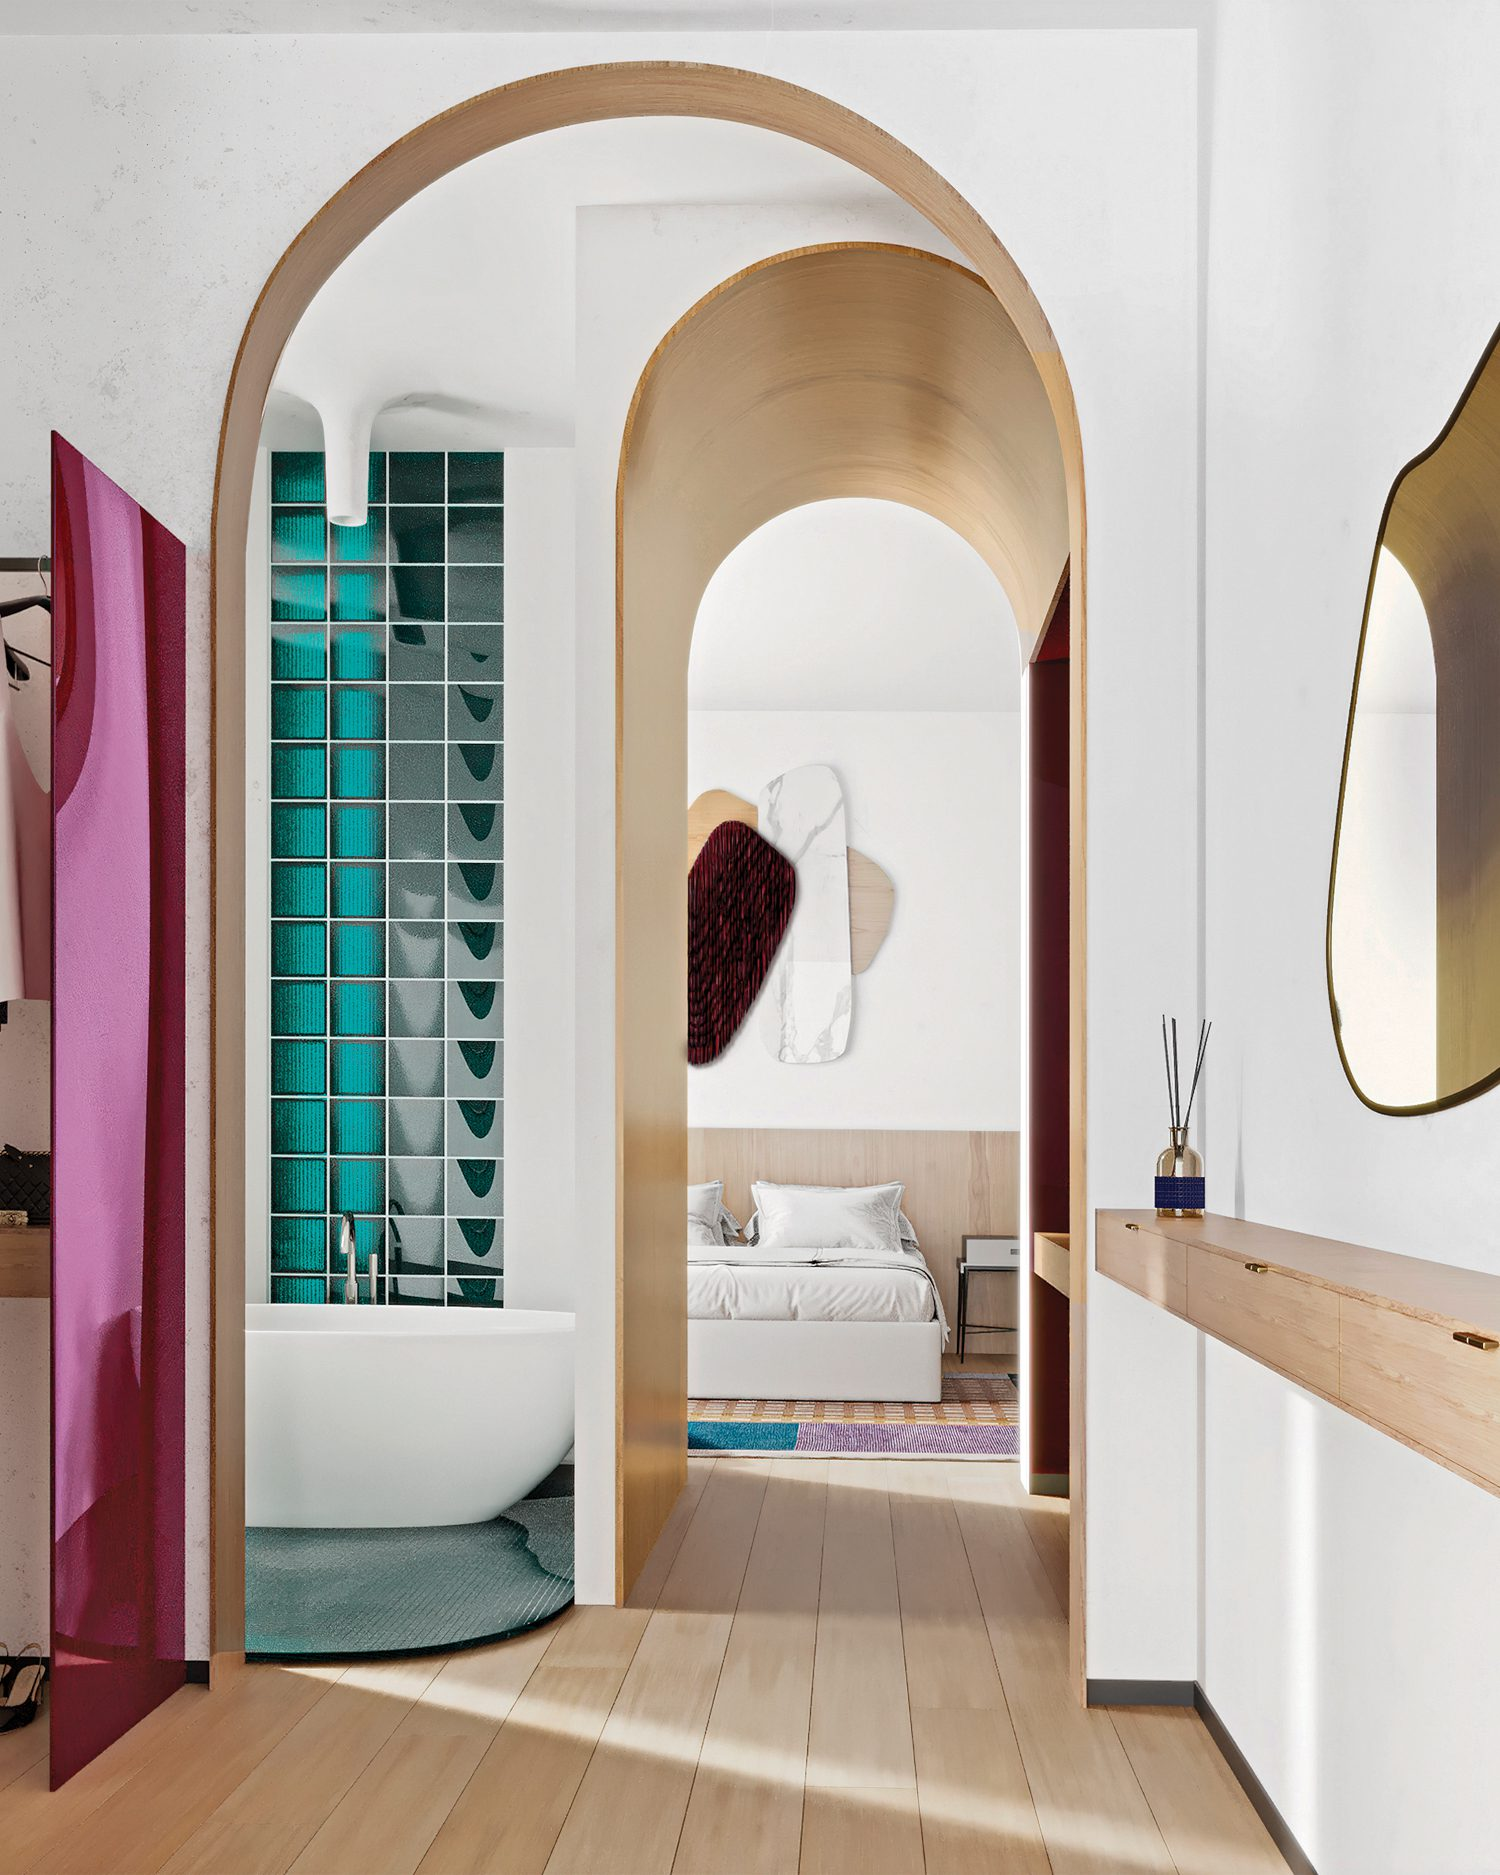 An enfilade of archways connects the bedroom to the bathroom and walk-in closet, where an artsy partition is formed from glass panels sandwiching colored film.